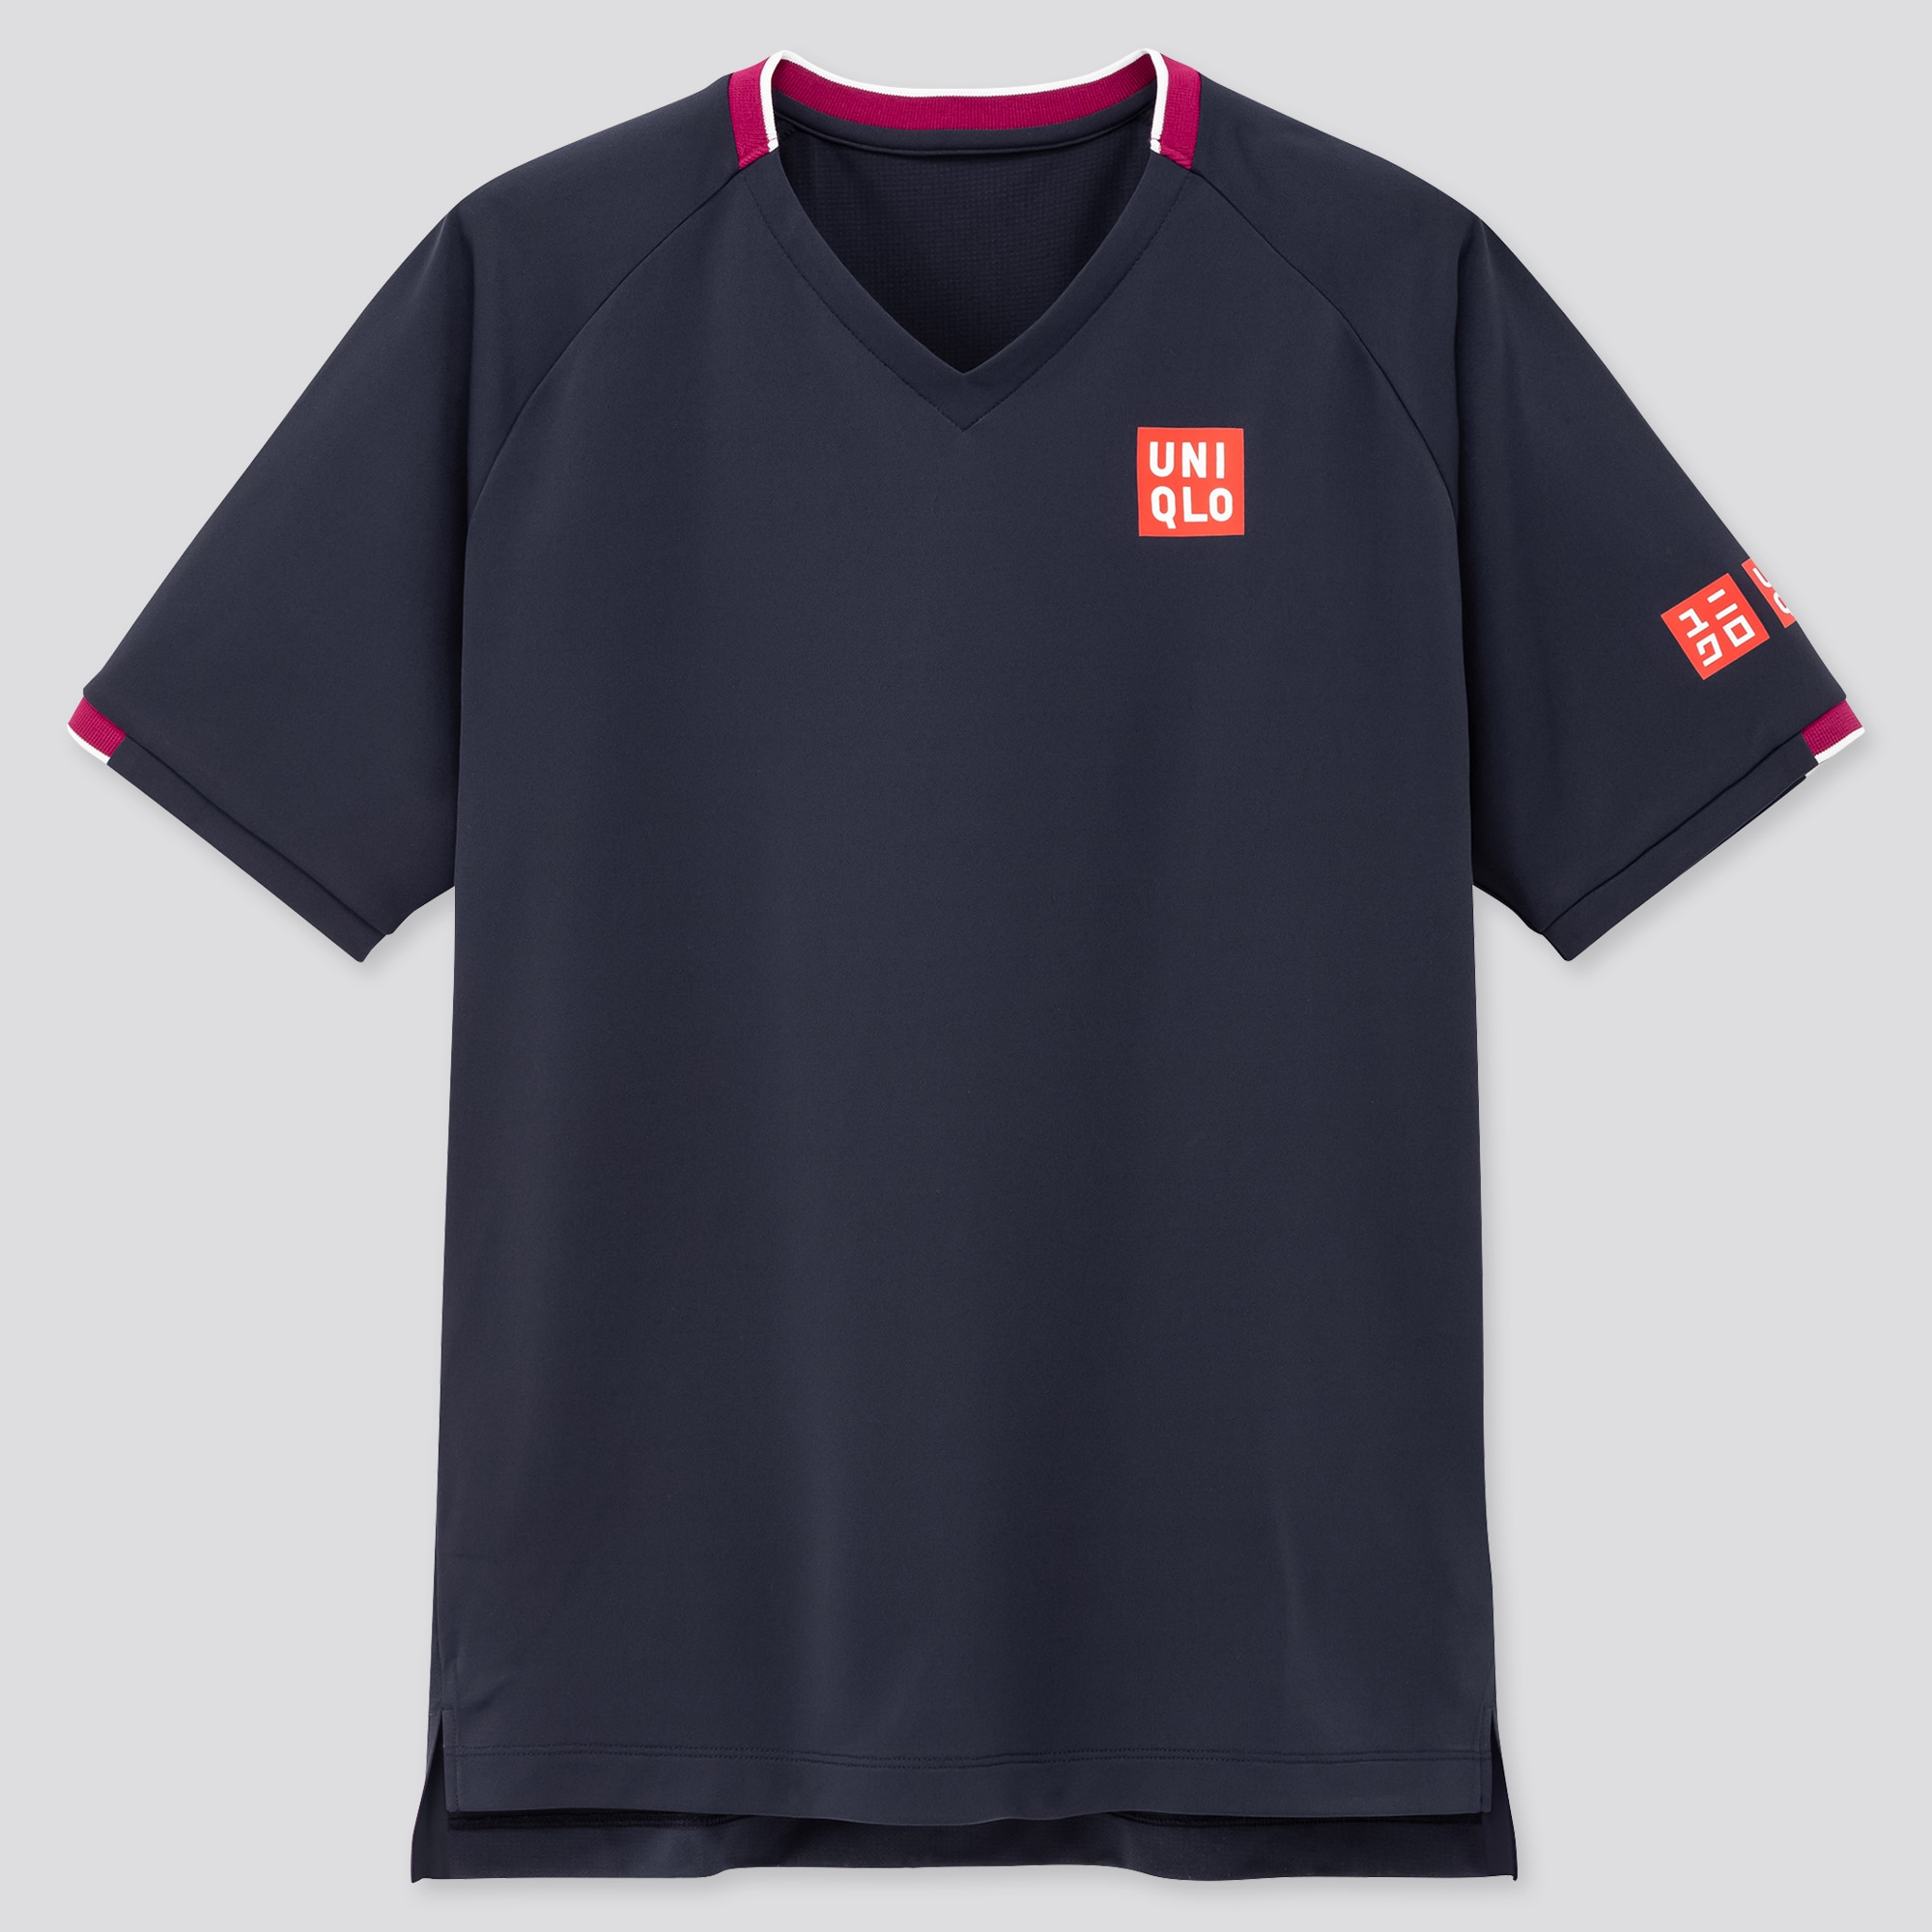 MEN DRY-EX V-NECK T-SHIRT (ROGER FEDERER 20AUS)